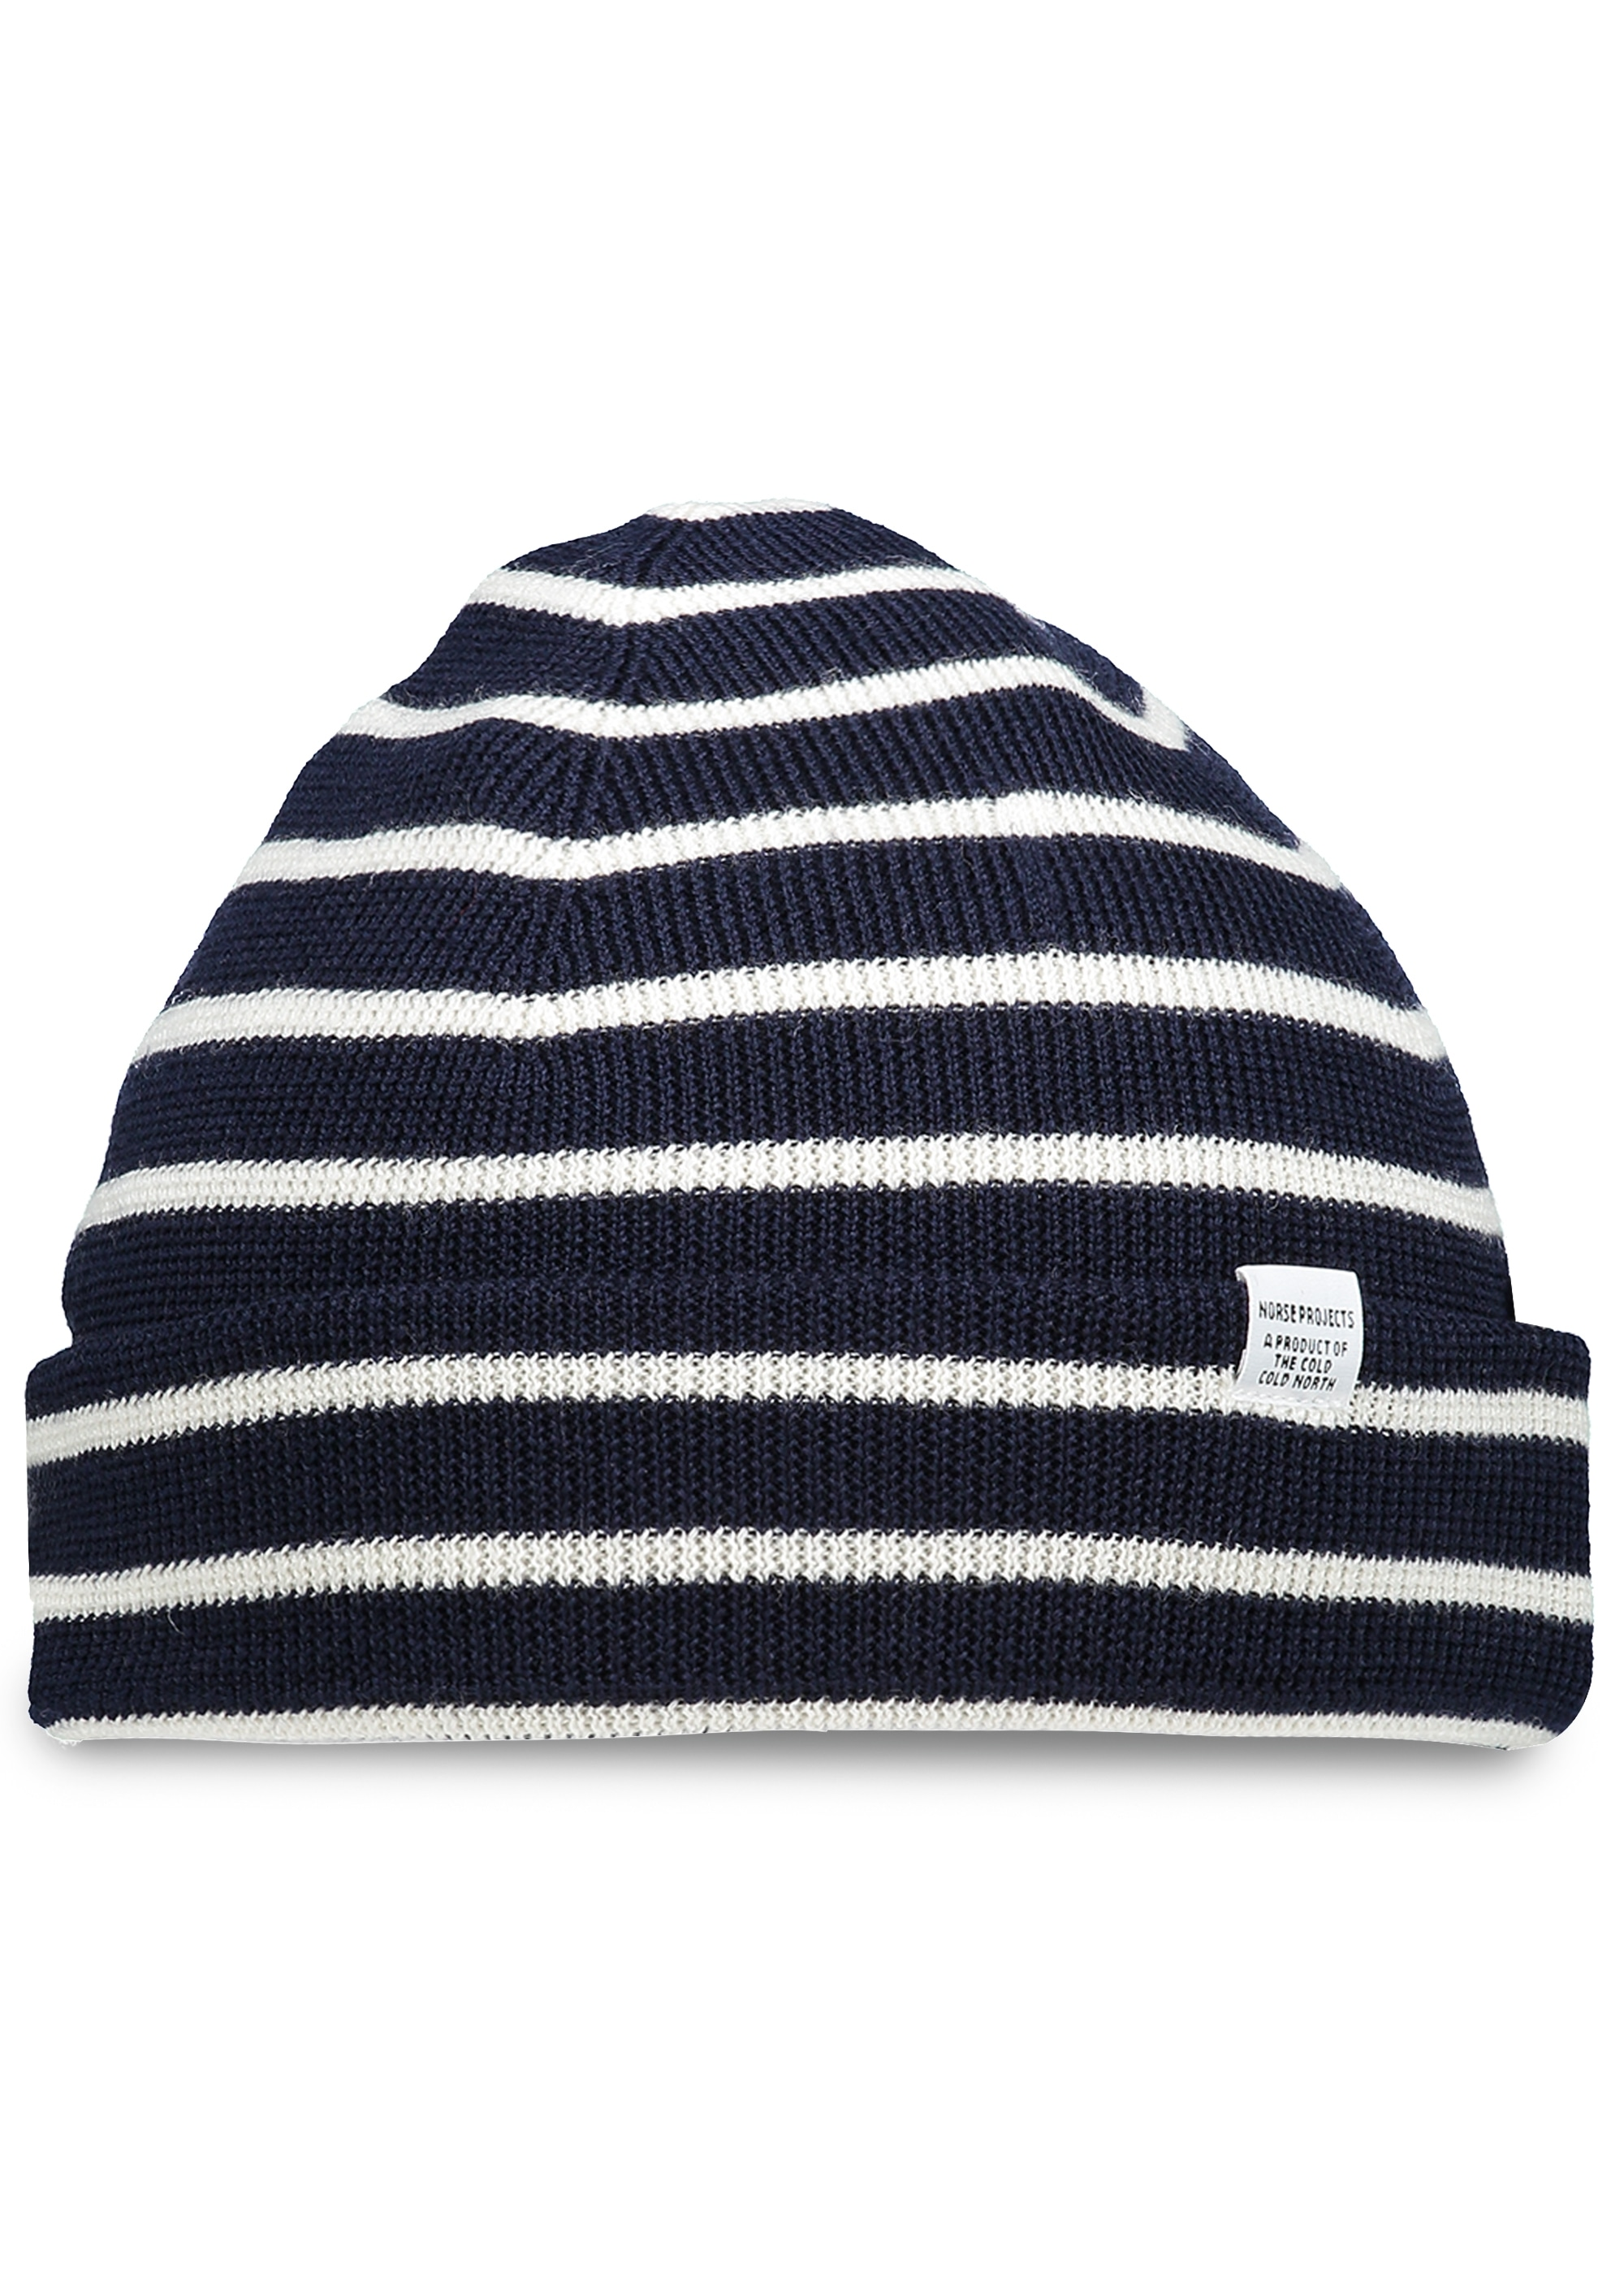 59733673c45 Norse Projects Classic Normandy Beanie - Navy - Headwear from Triads UK